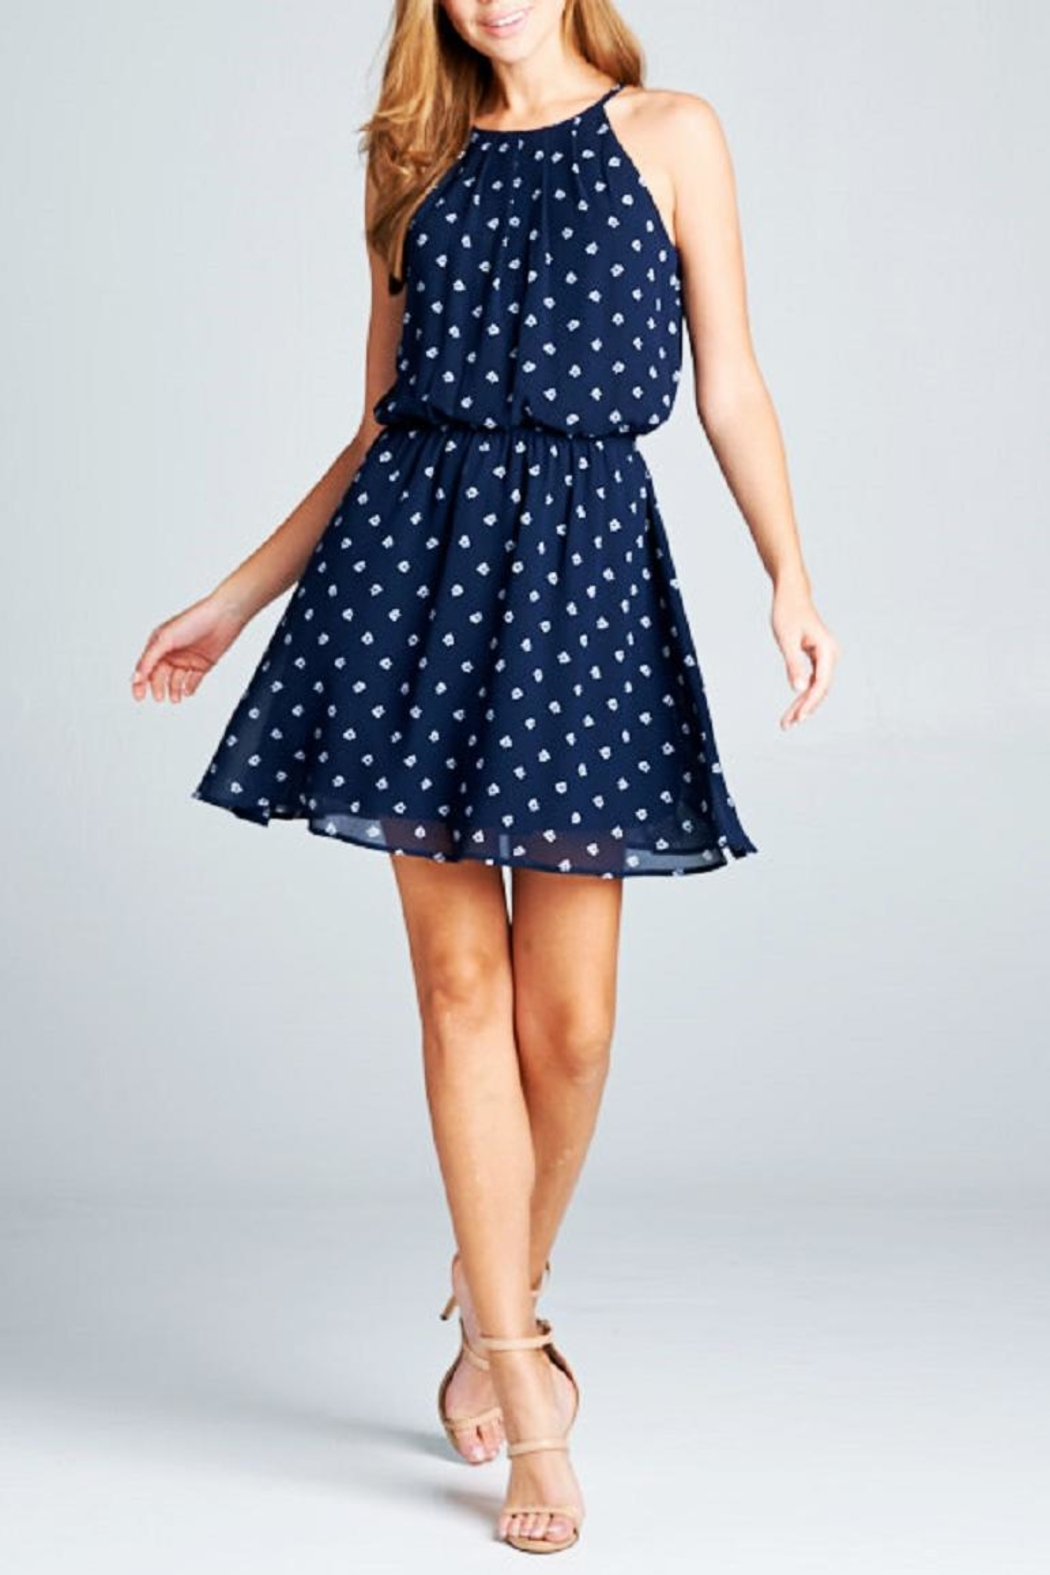 DNA Couture Chiffon Navy Dress - Main Image